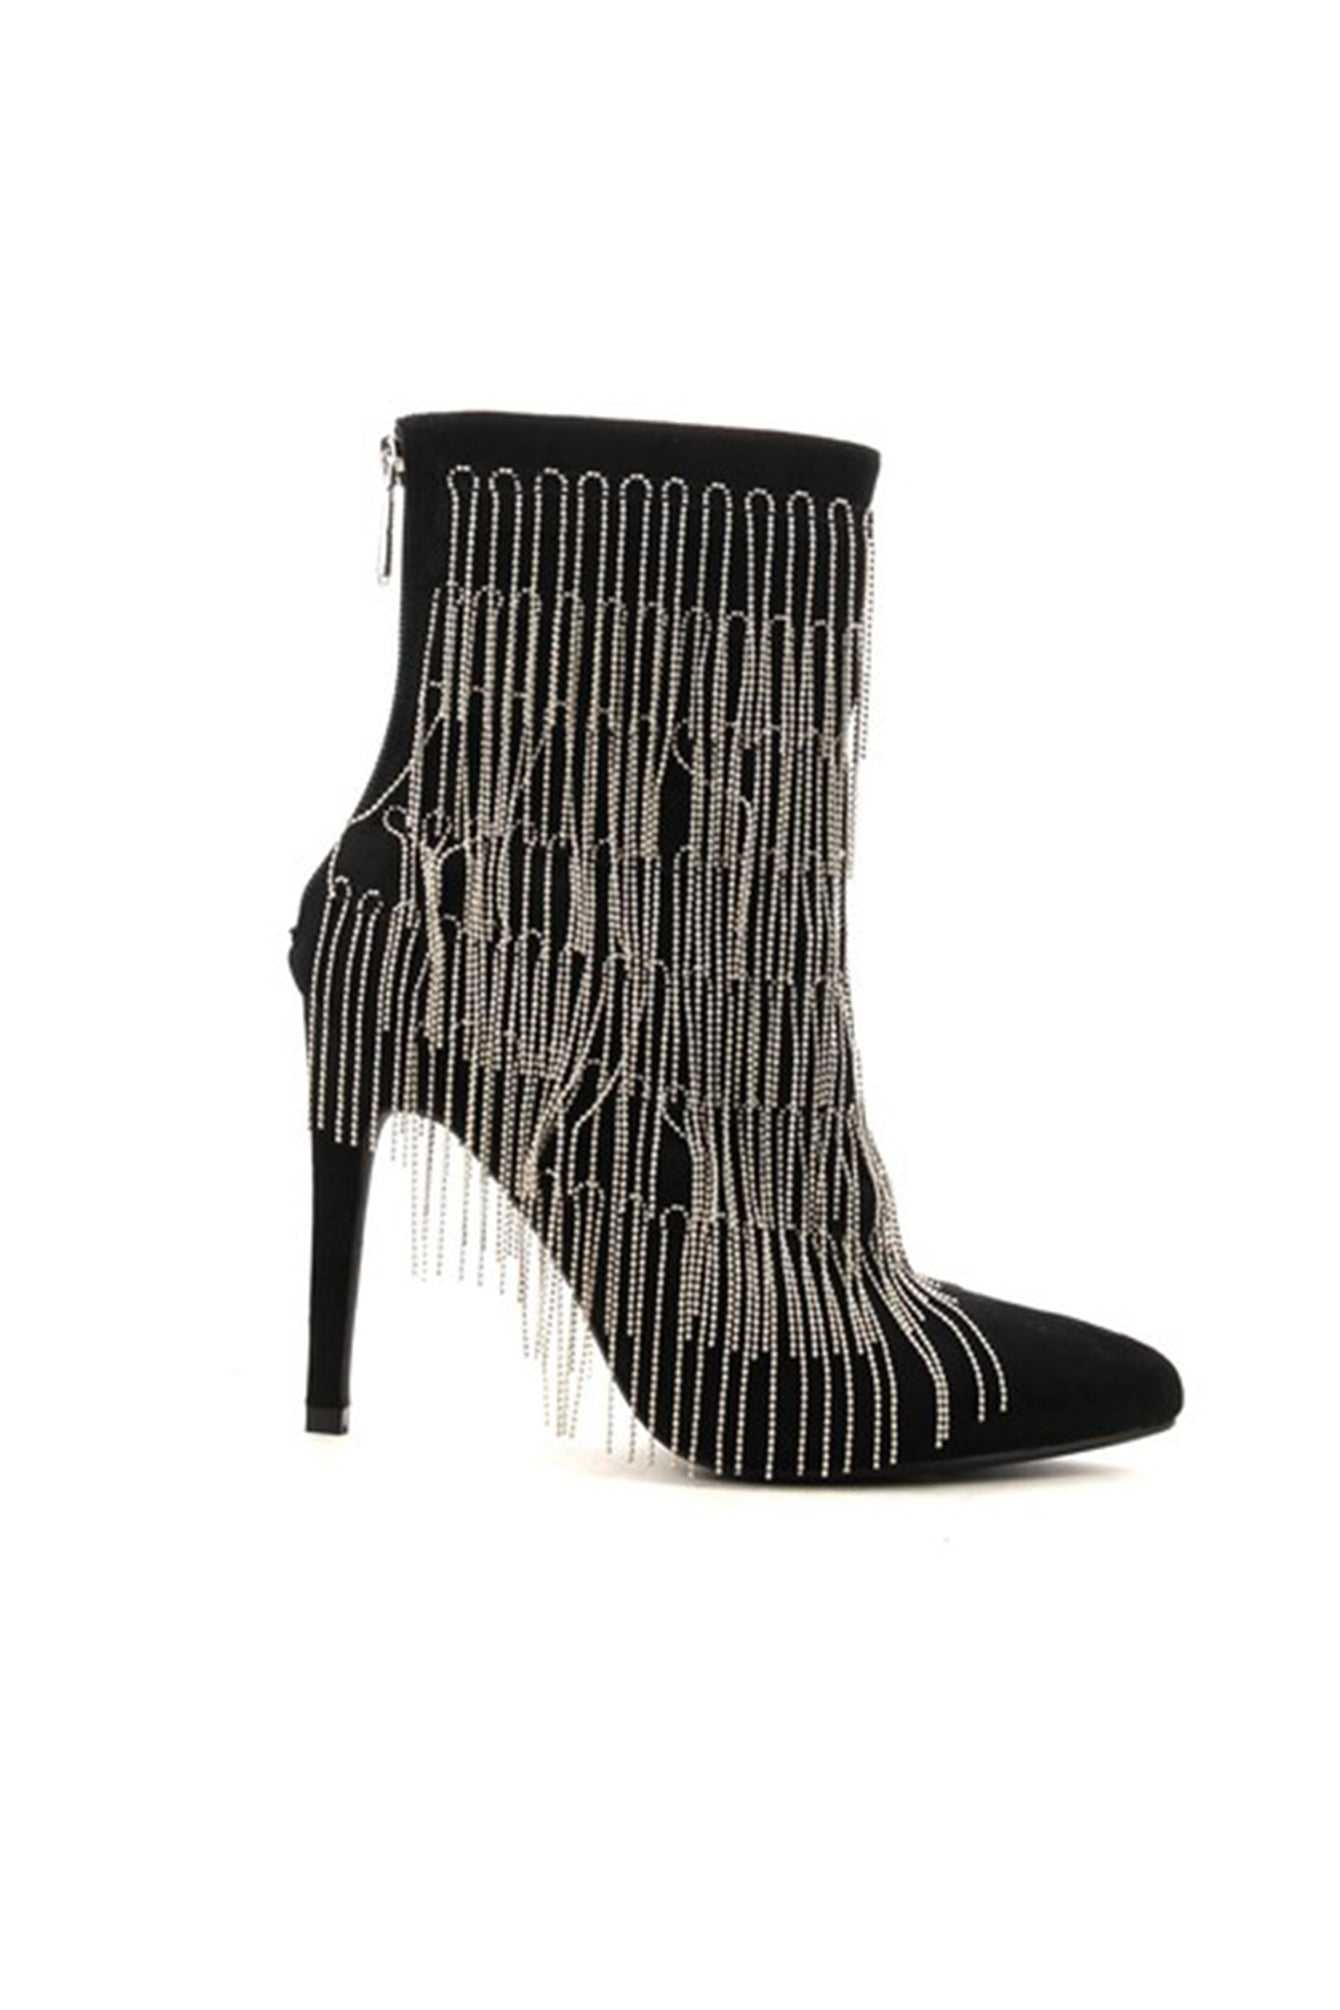 Silver Chain Fringe Black Ankle Booties